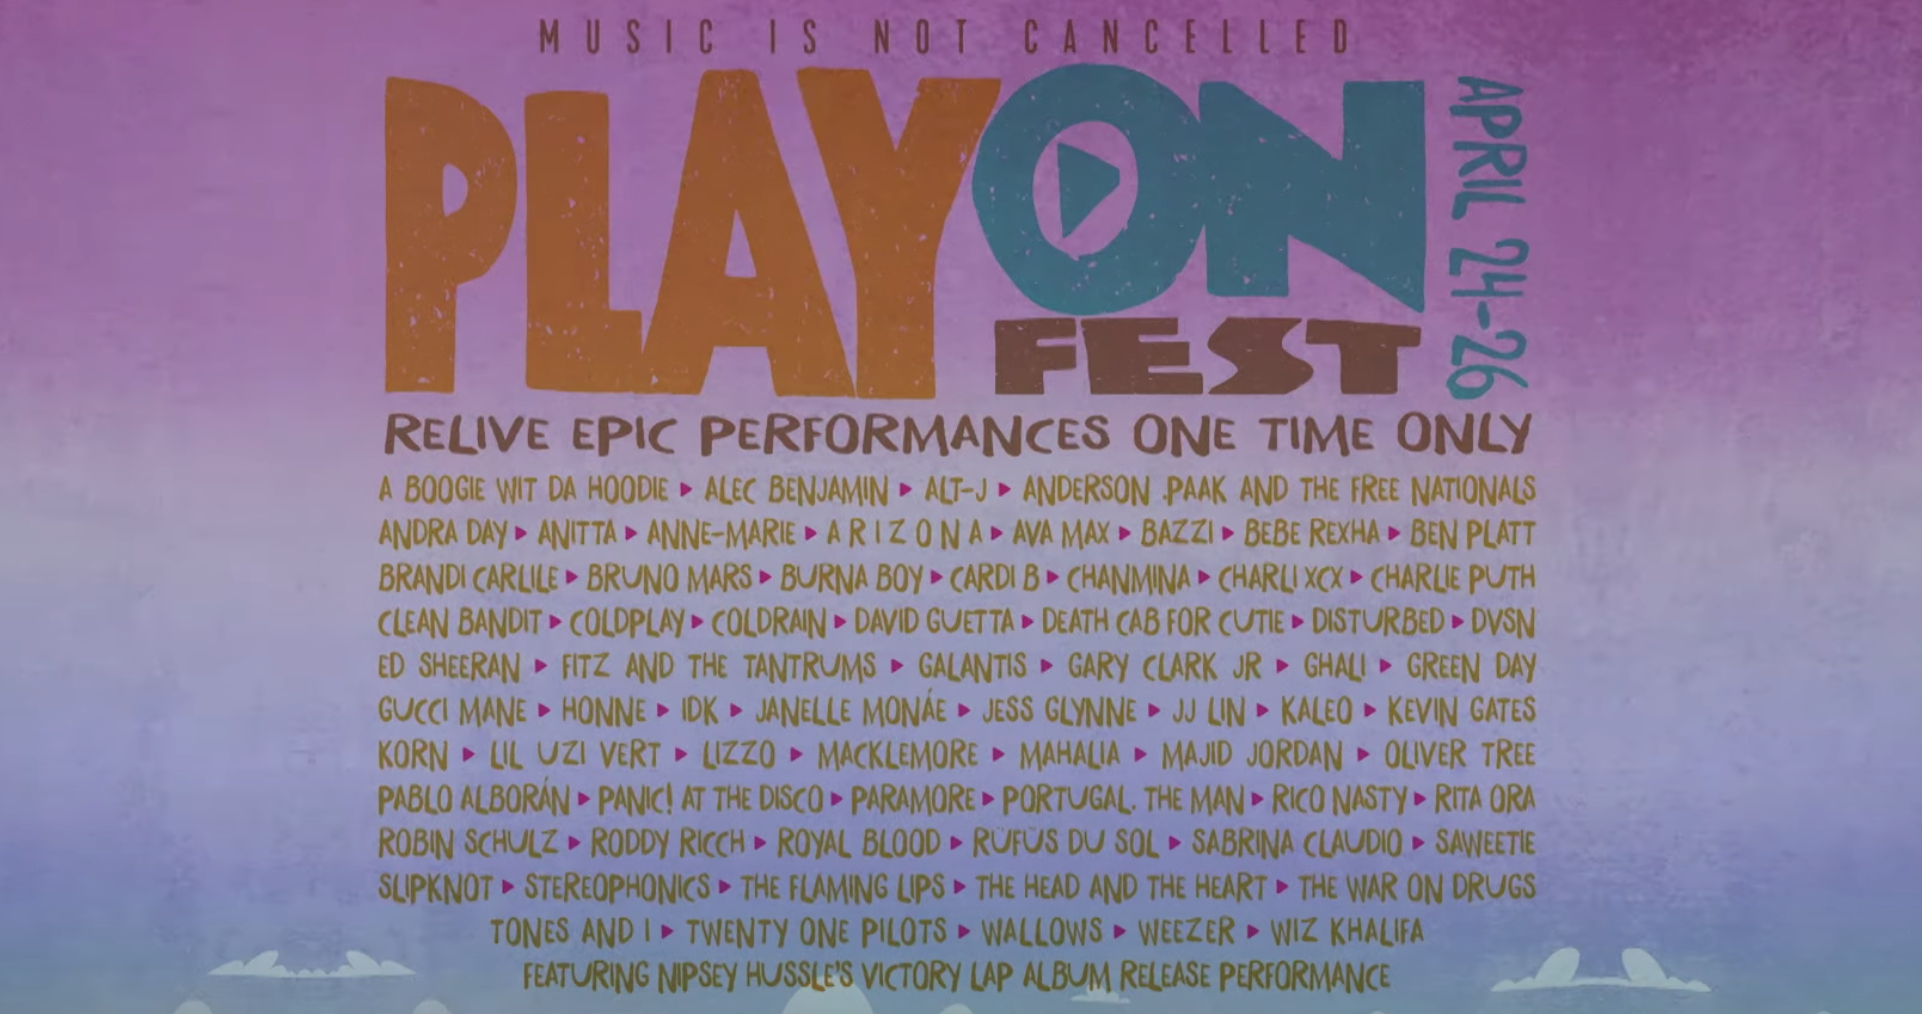 Stream PlayOn Fest f/ Memorable Performances From Lil Uzi Vert, Cardi B, Nipsey Hussle, and More